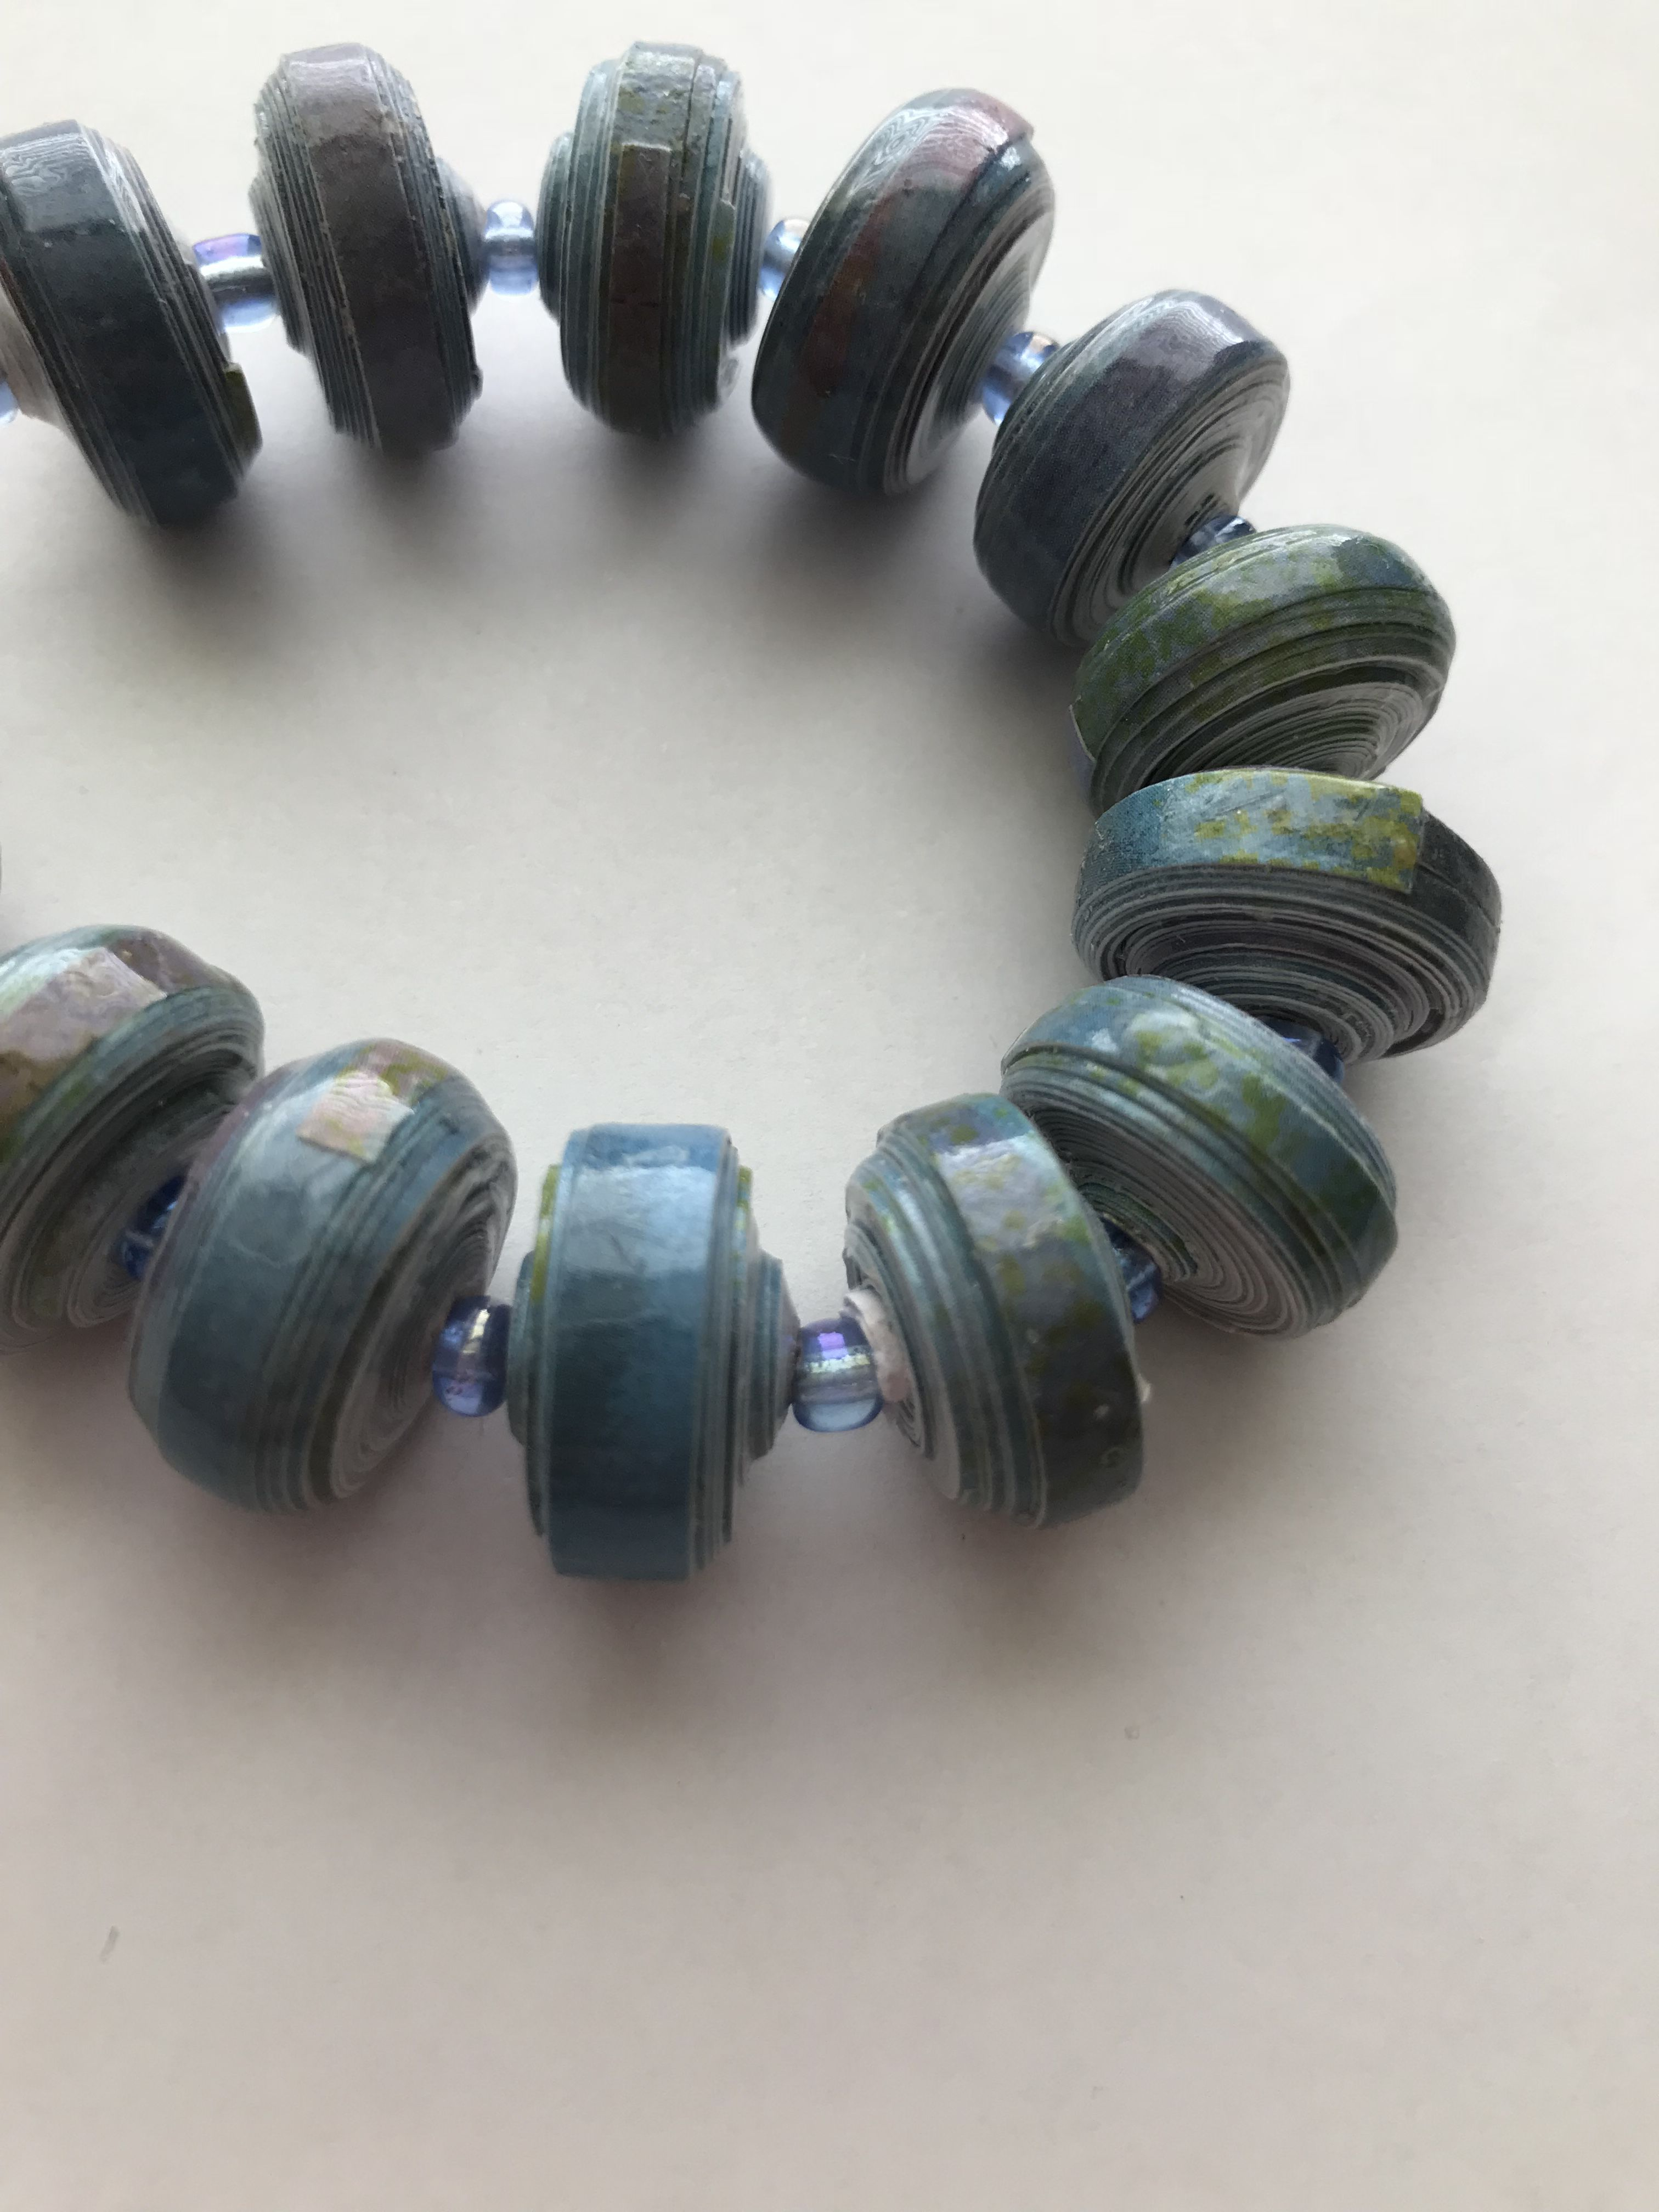 priced reasonable gree any unique paperbeads gift costume occasion blue jewelry handmade woman bracelet for